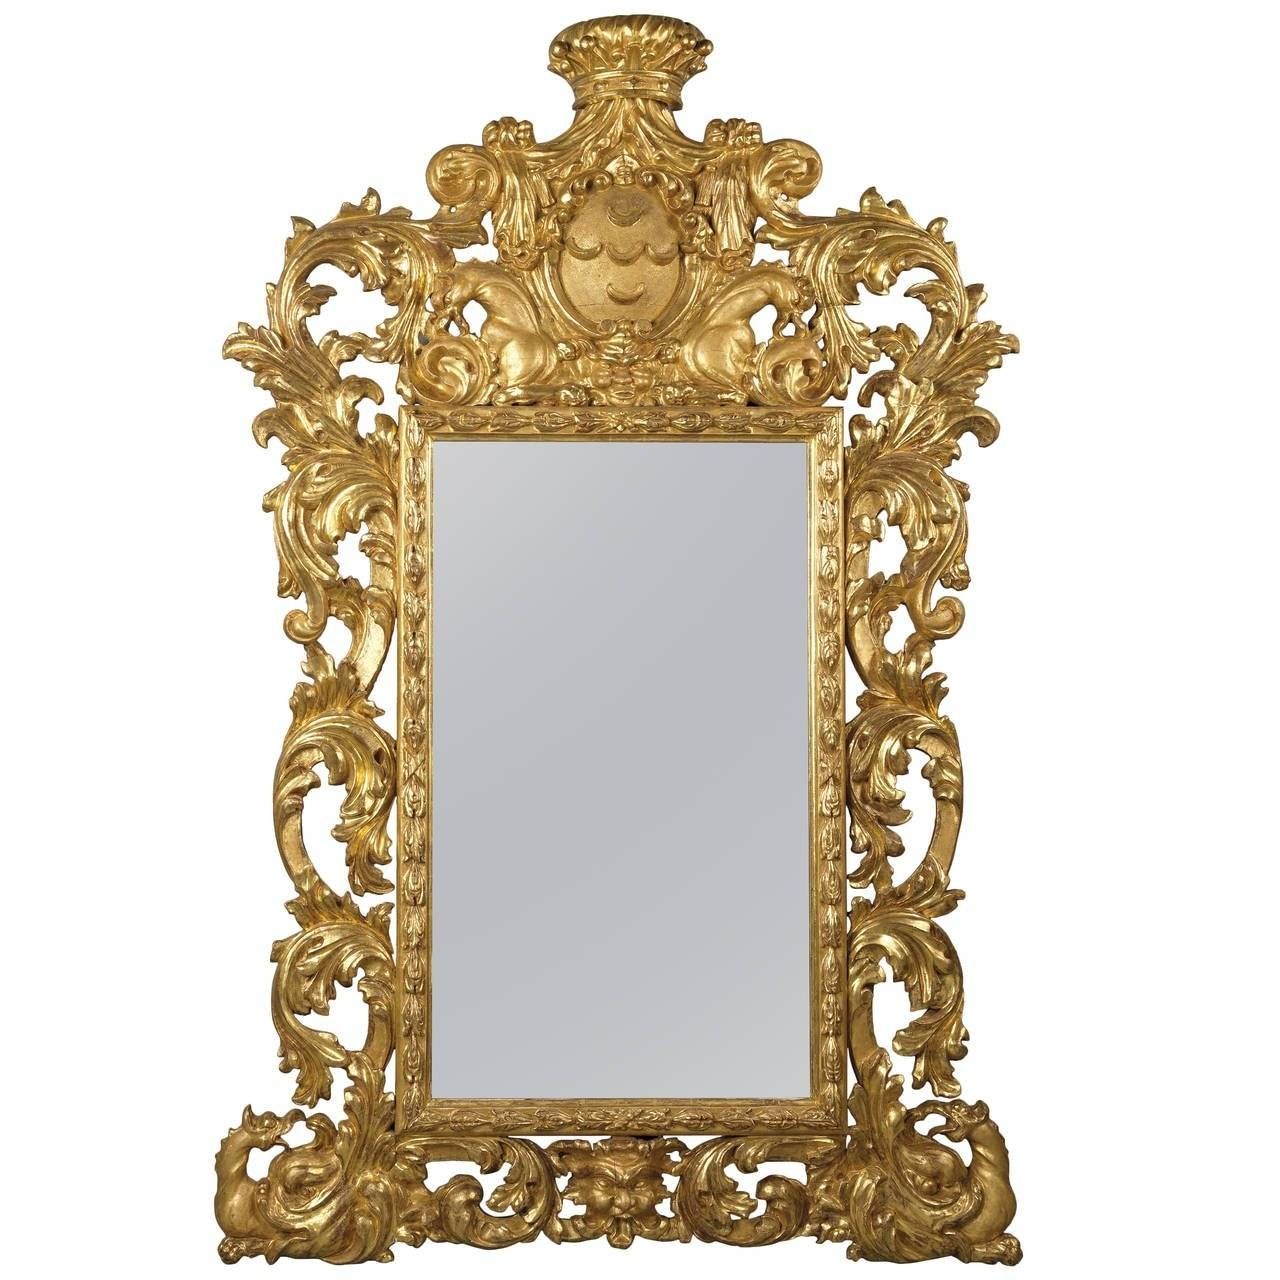 Baroque Style Carved Giltwood Mirror For Sale At 1Stdibs Throughout Baroque Style Mirrors (View 6 of 25)